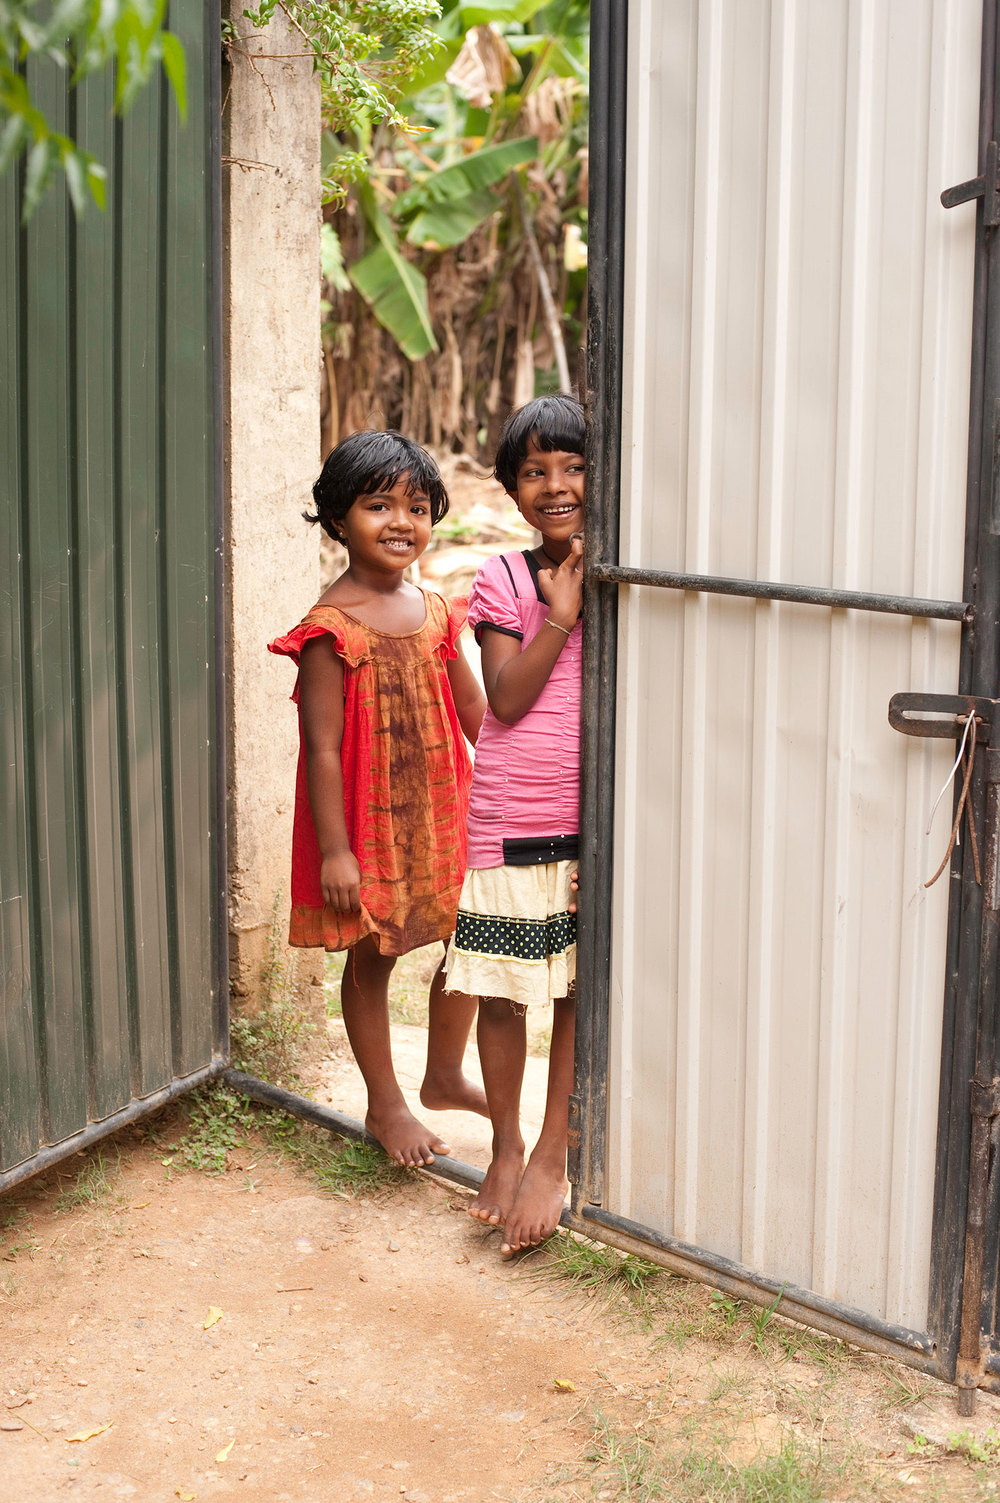 Sri Lanka neighbors